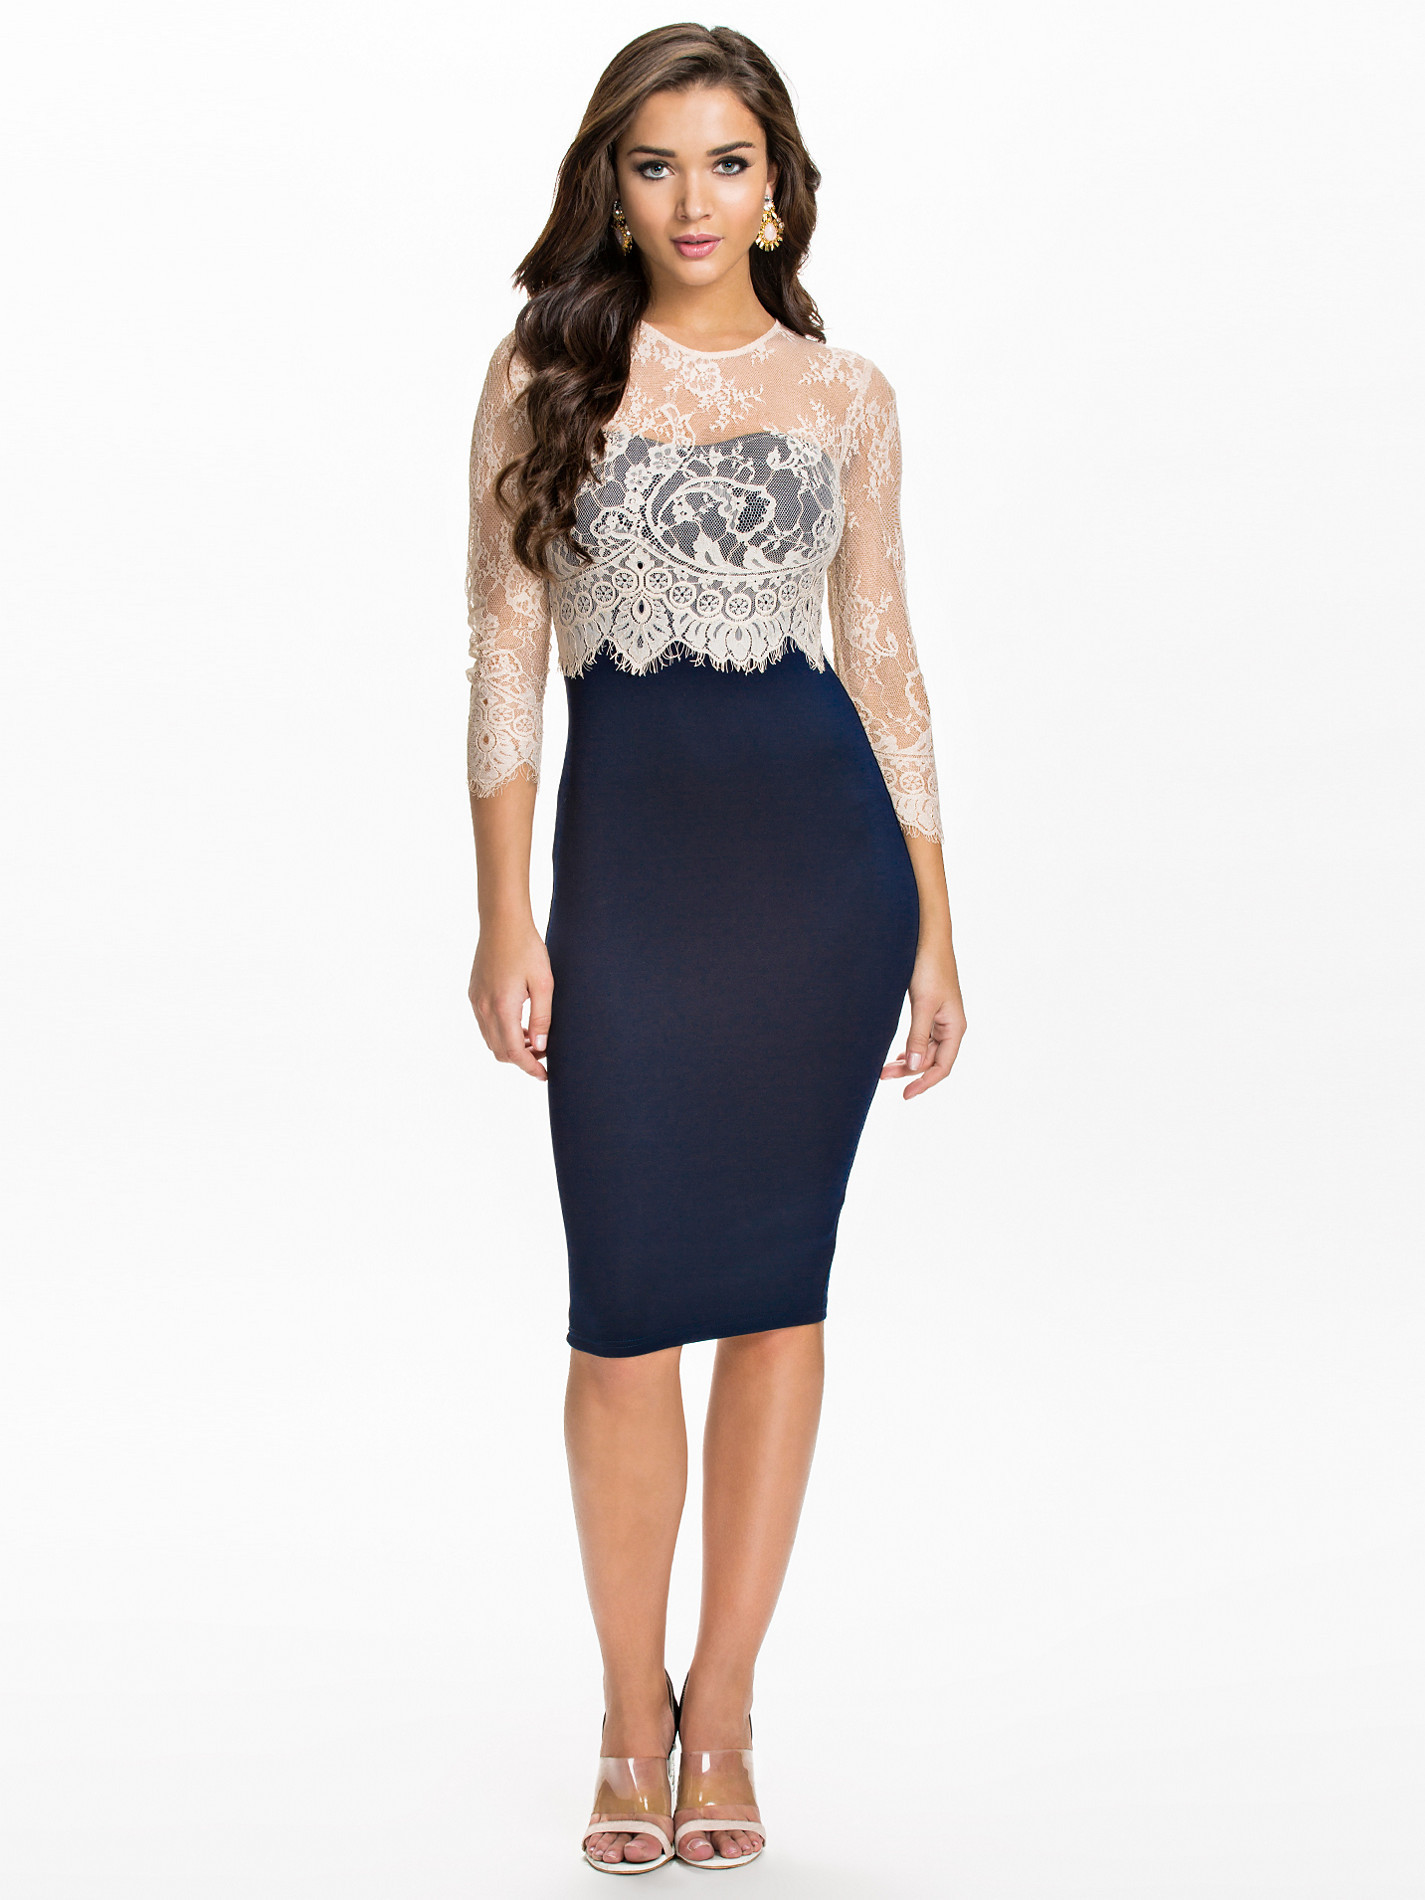 Discover the exclusive collection of women's dresses from the best designers on YOOX. Discover our wide selection of items and shop online: easy and free returns, secure payments and hour delivery! Dresses come in all shapes and sizes, colors and styles, from printed to solid color, mini to ankle length. There's a style for every moment of.